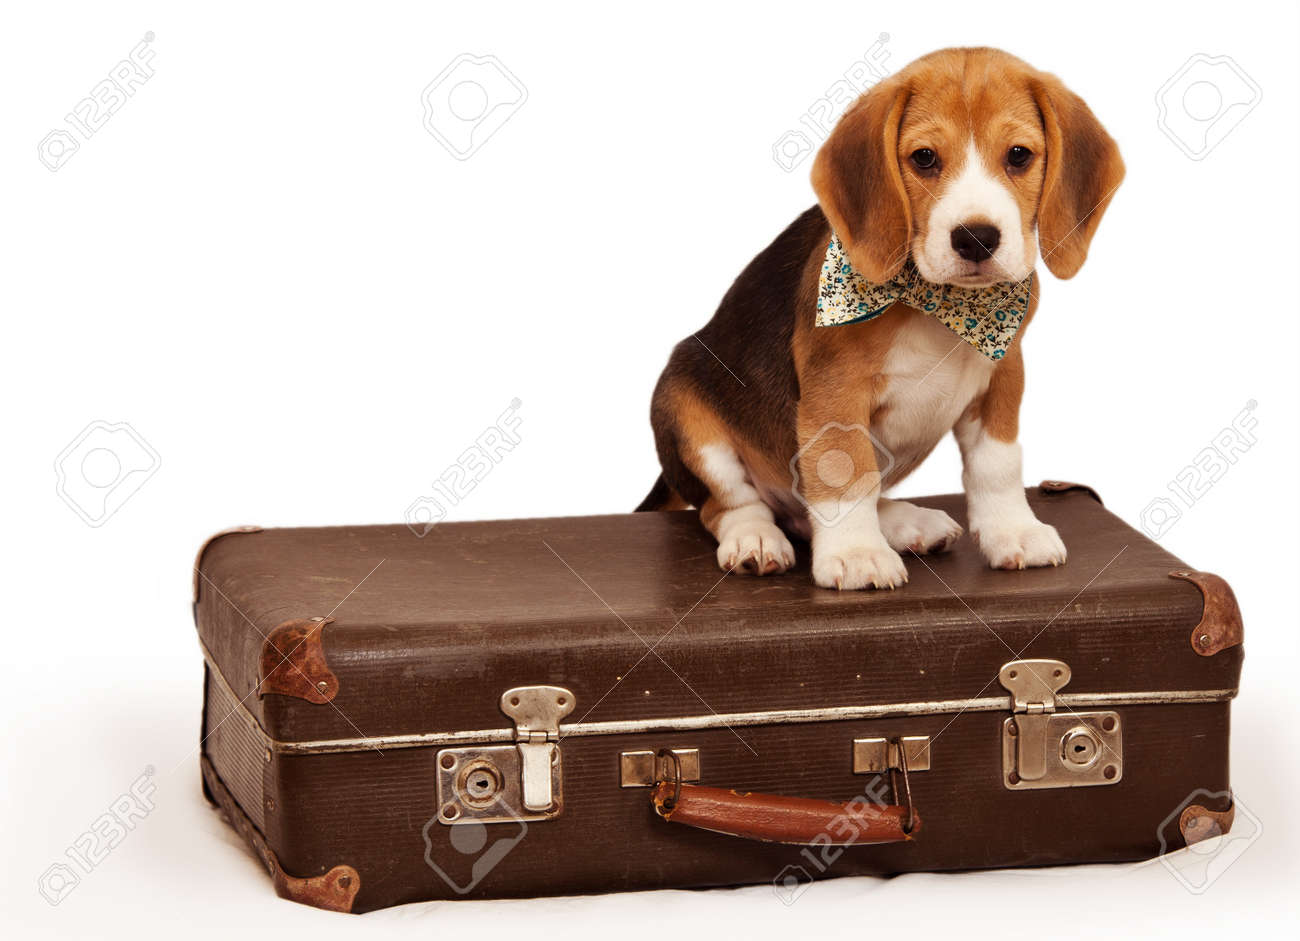 Cute beagle puppy sitting on the old suitcase stock photo picture cute beagle puppy sitting on the old suitcase stock photo 18868276 voltagebd Gallery